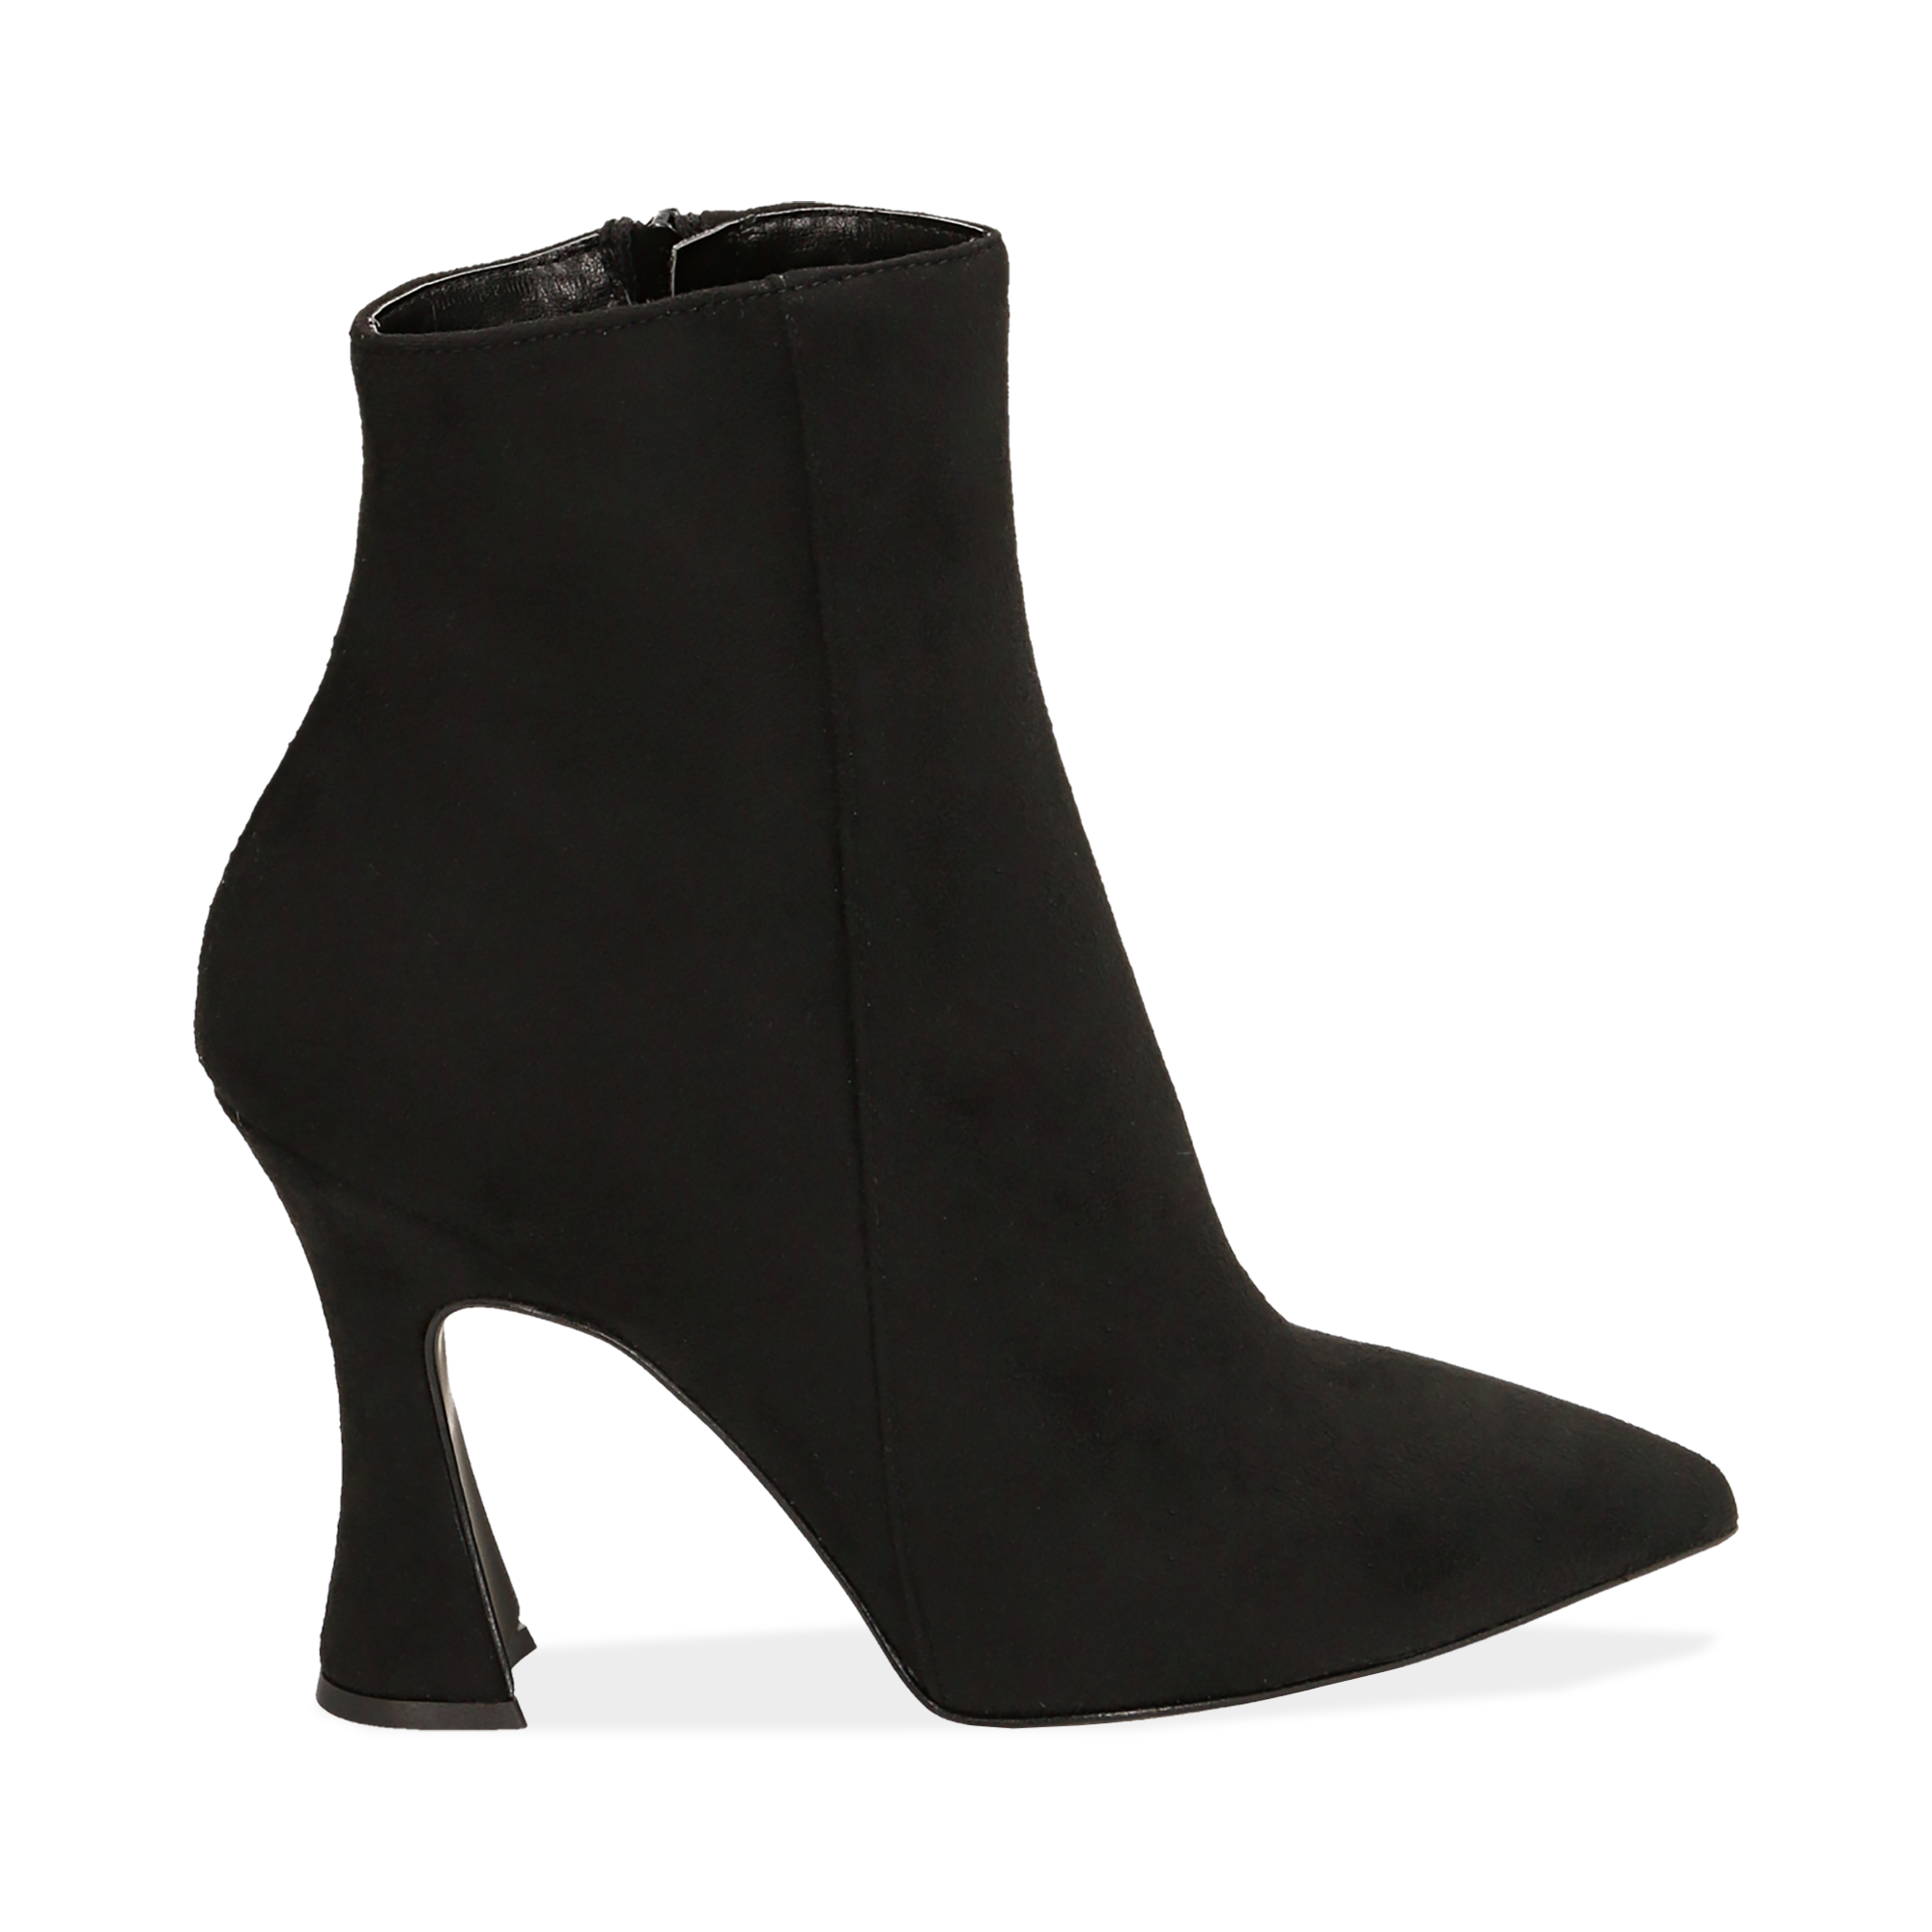 Ankle boots neri in microfibra, tacco 10 cm